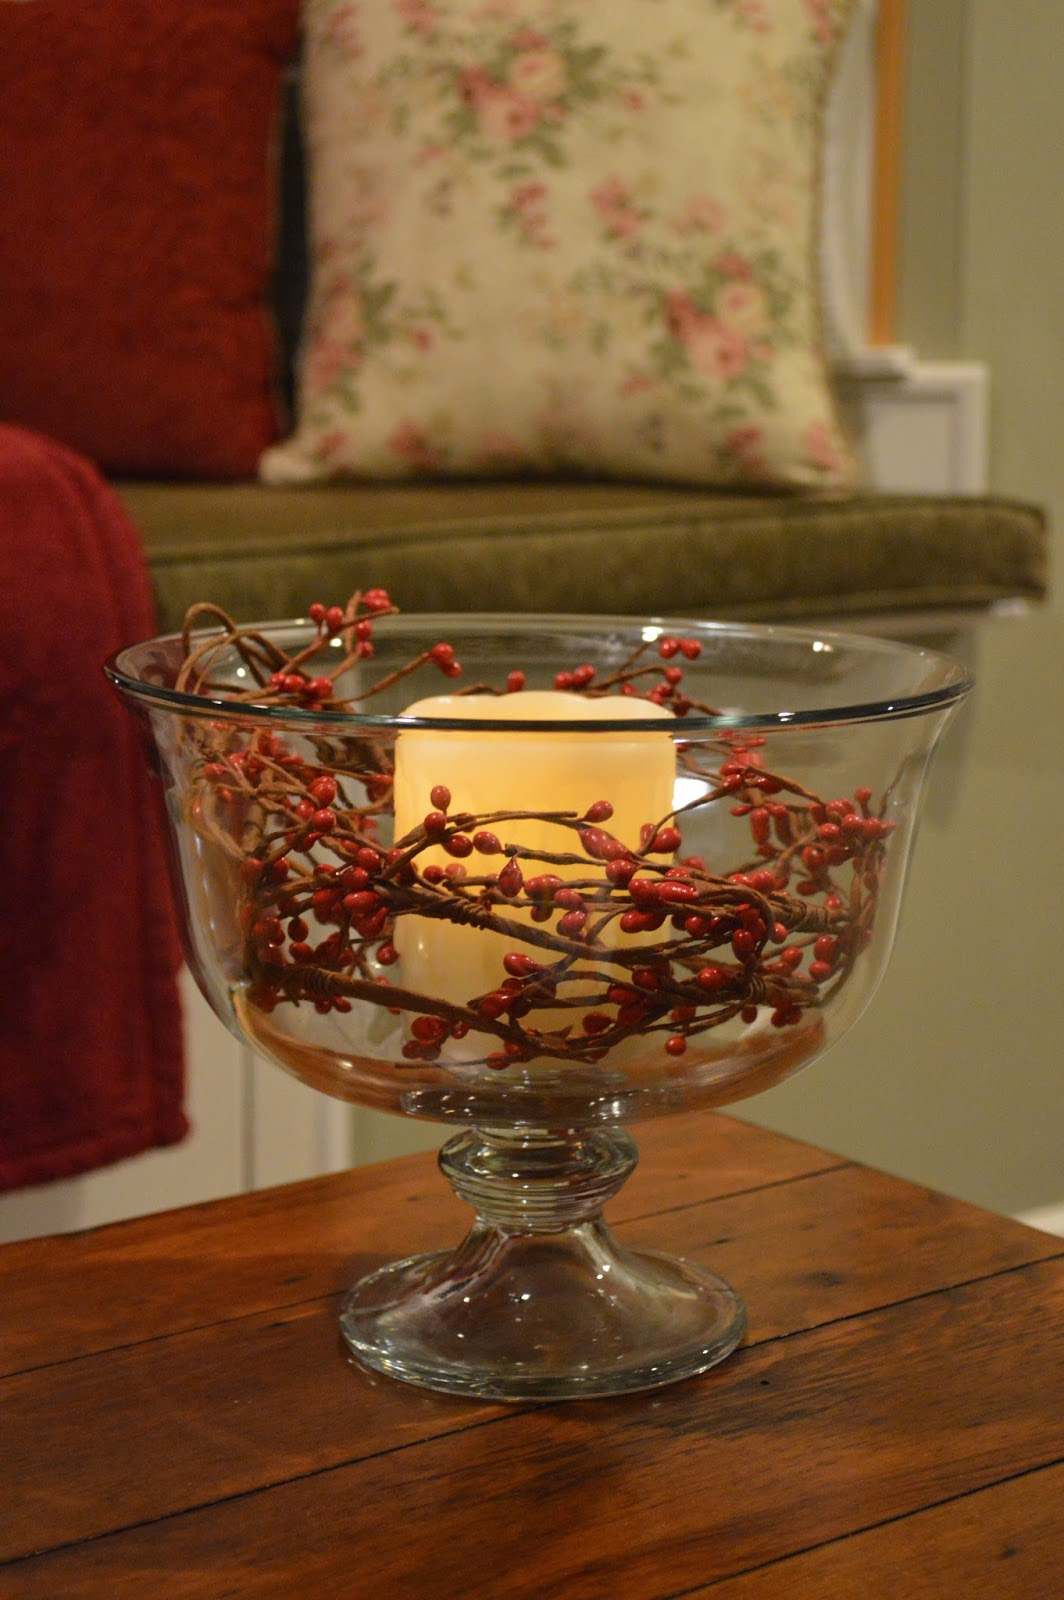 Stunning Candle Decor ~ An Easy Upgrade |Exquisitely ...